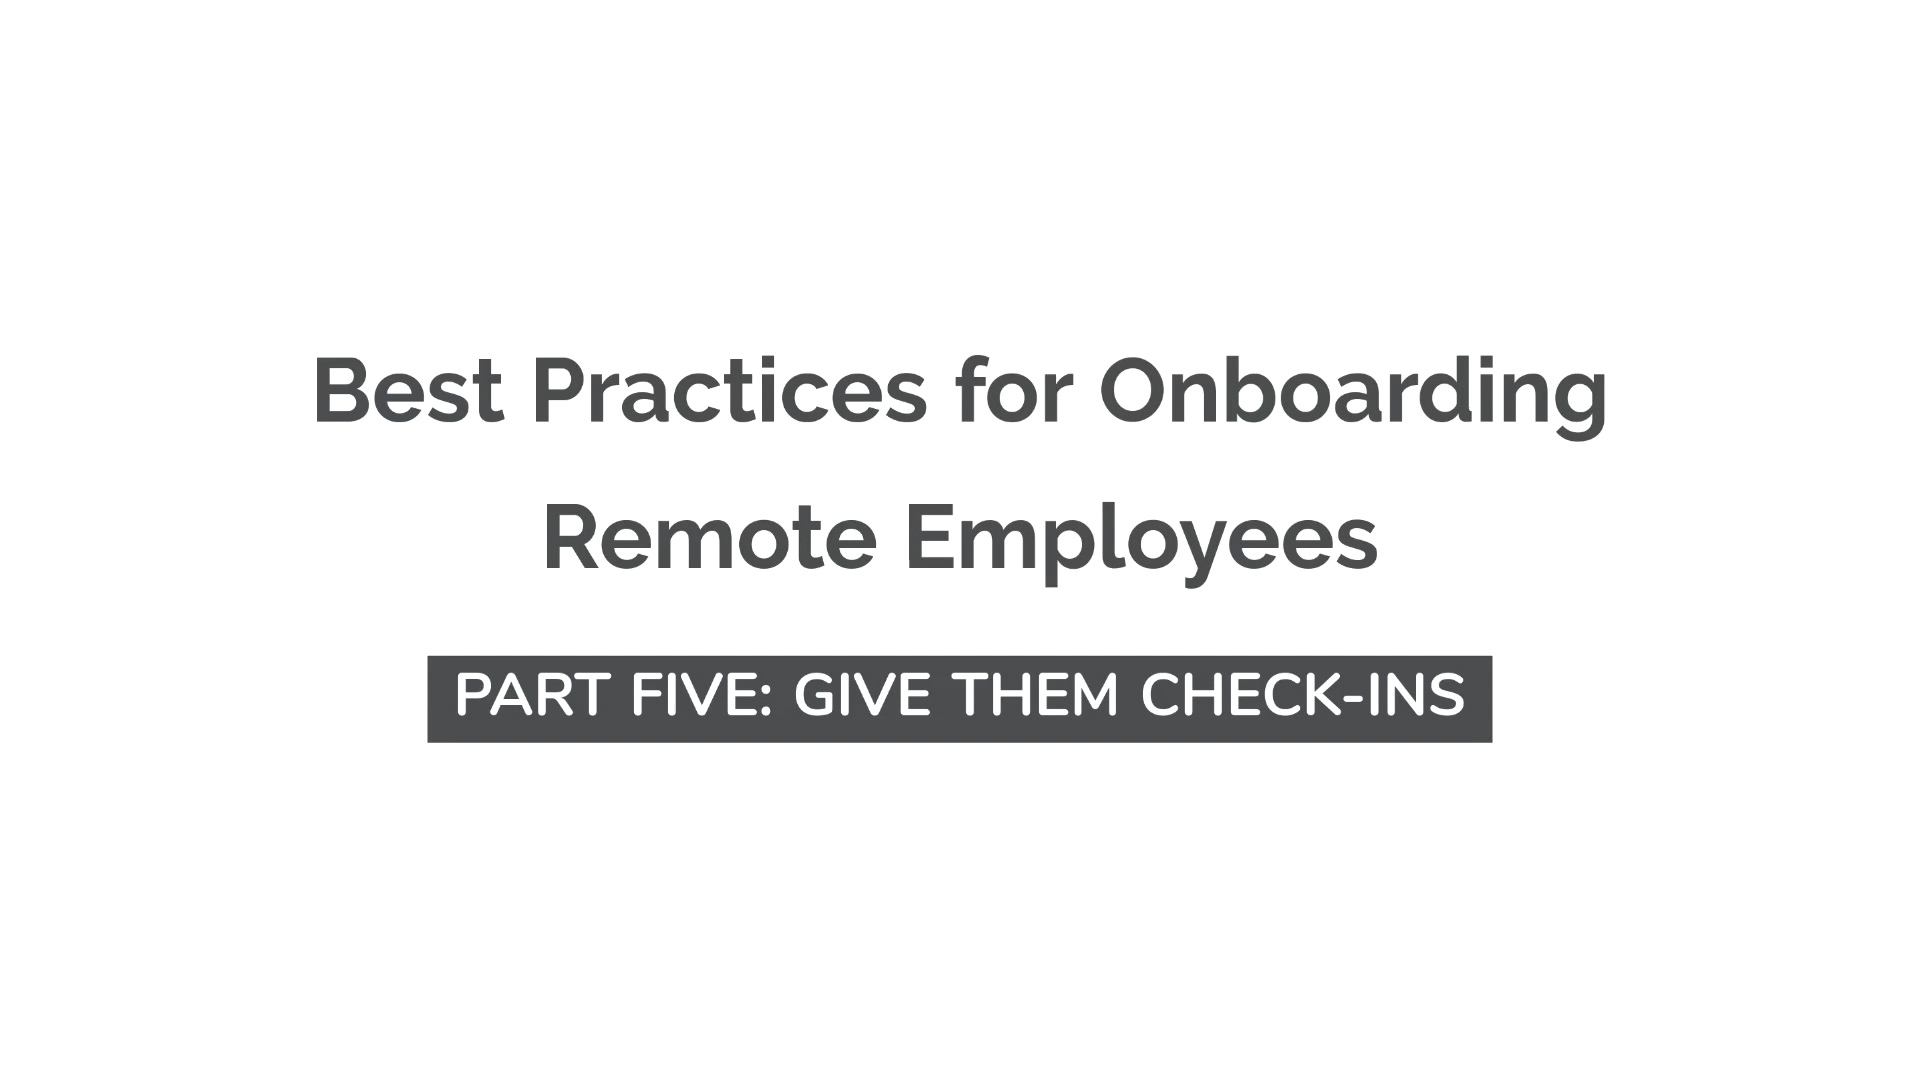 Onboarding new employees remotely: Giving Check-ins